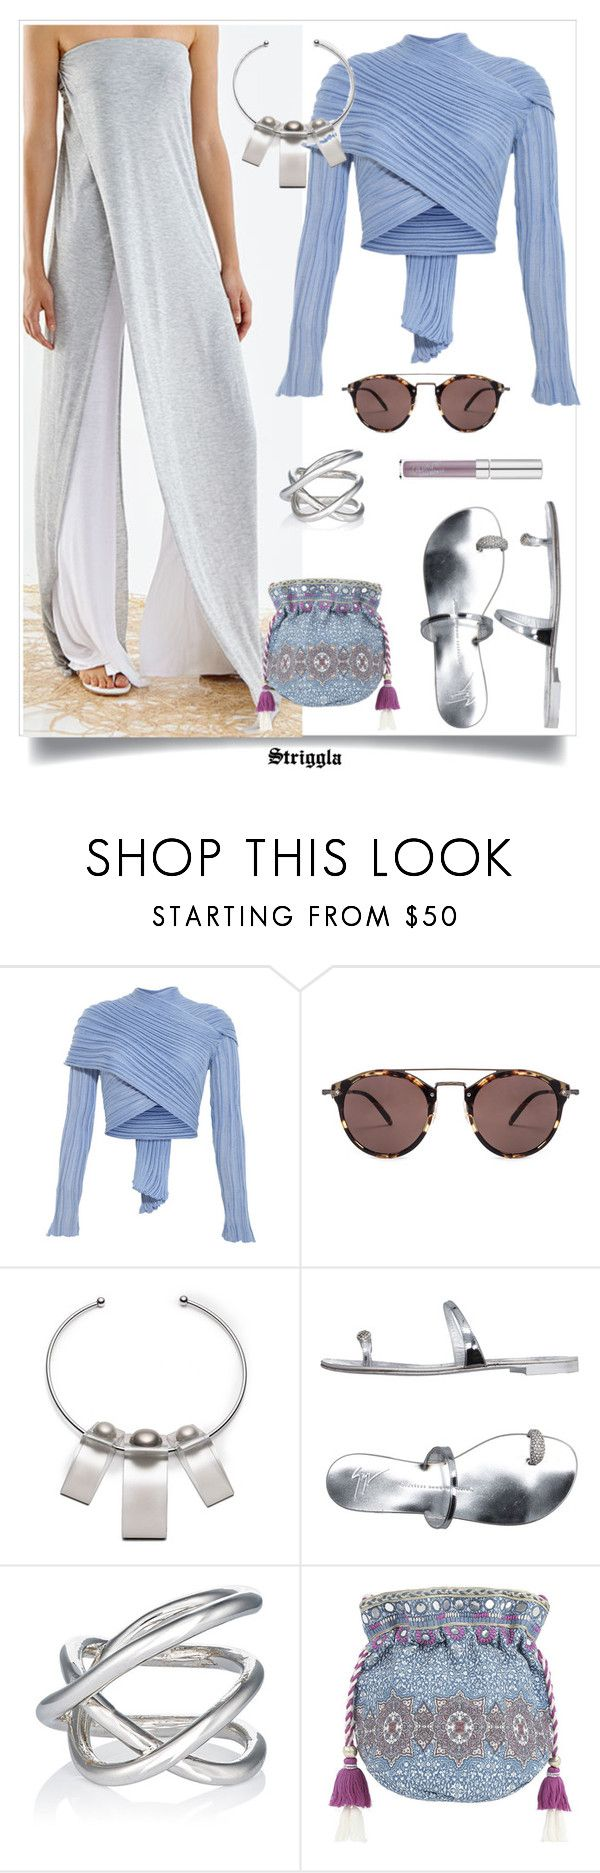 """""""Strapless Overall"""" by striggla ❤ liked on Polyvore featuring Oliver Peoples, Alexis Bittar, Giuseppe Zanotti, Jennifer Fisher, Monsoon, Silver, jumpsuit, overall and polyvoreeditorial"""